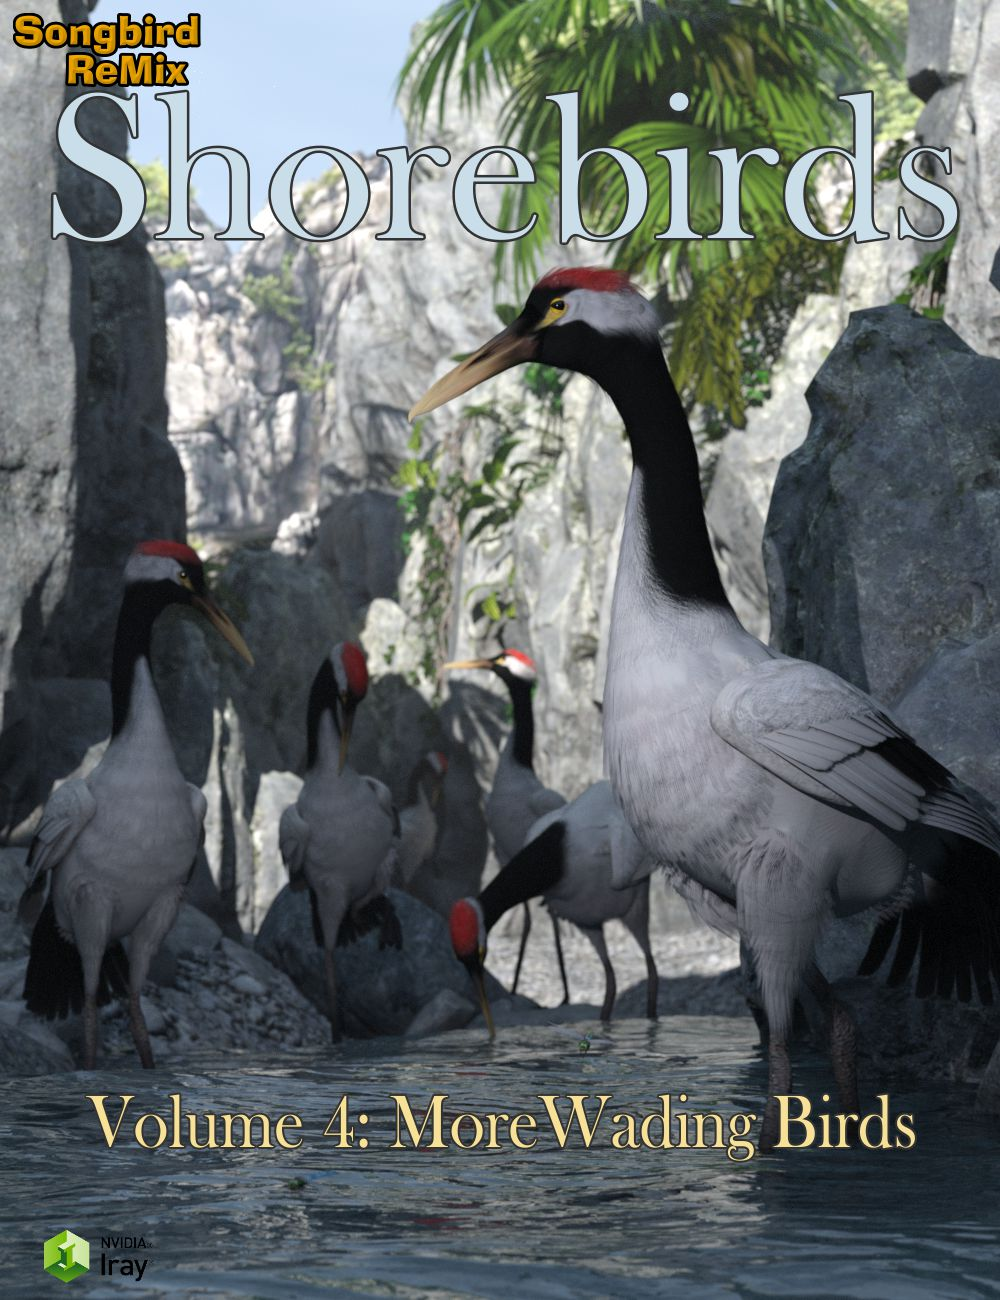 12019-sbrm-shorebirds-vol-4-main.jpg